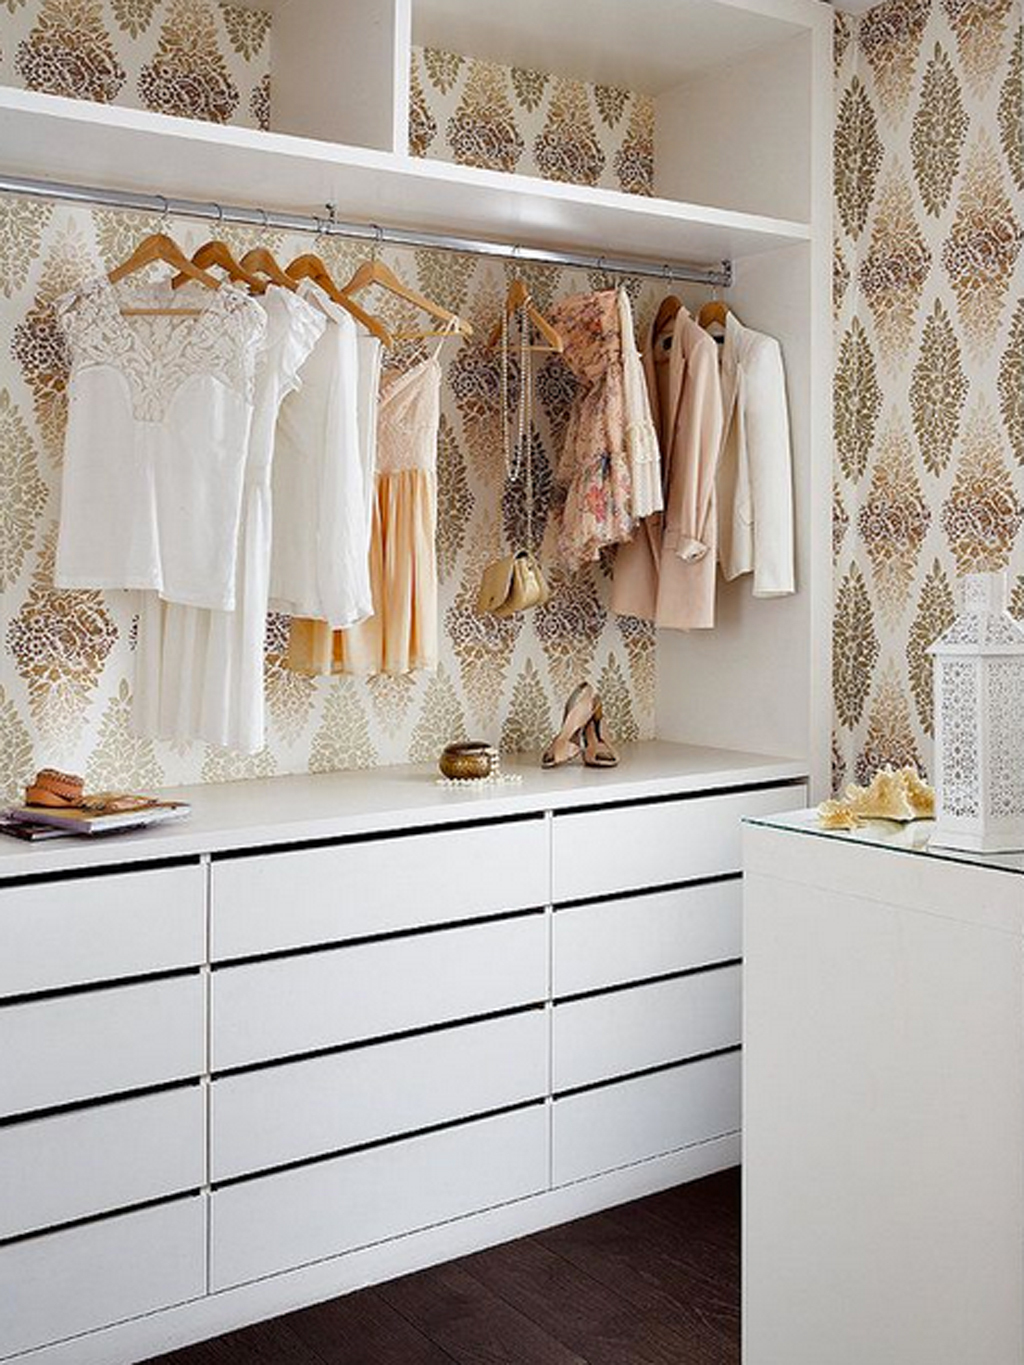 marvelous Tumblr Decor Shop Part - 3: how to wallpaper your closet gold and white ikea hacks closet cheap spring  decor ideas decorate. Tumblr